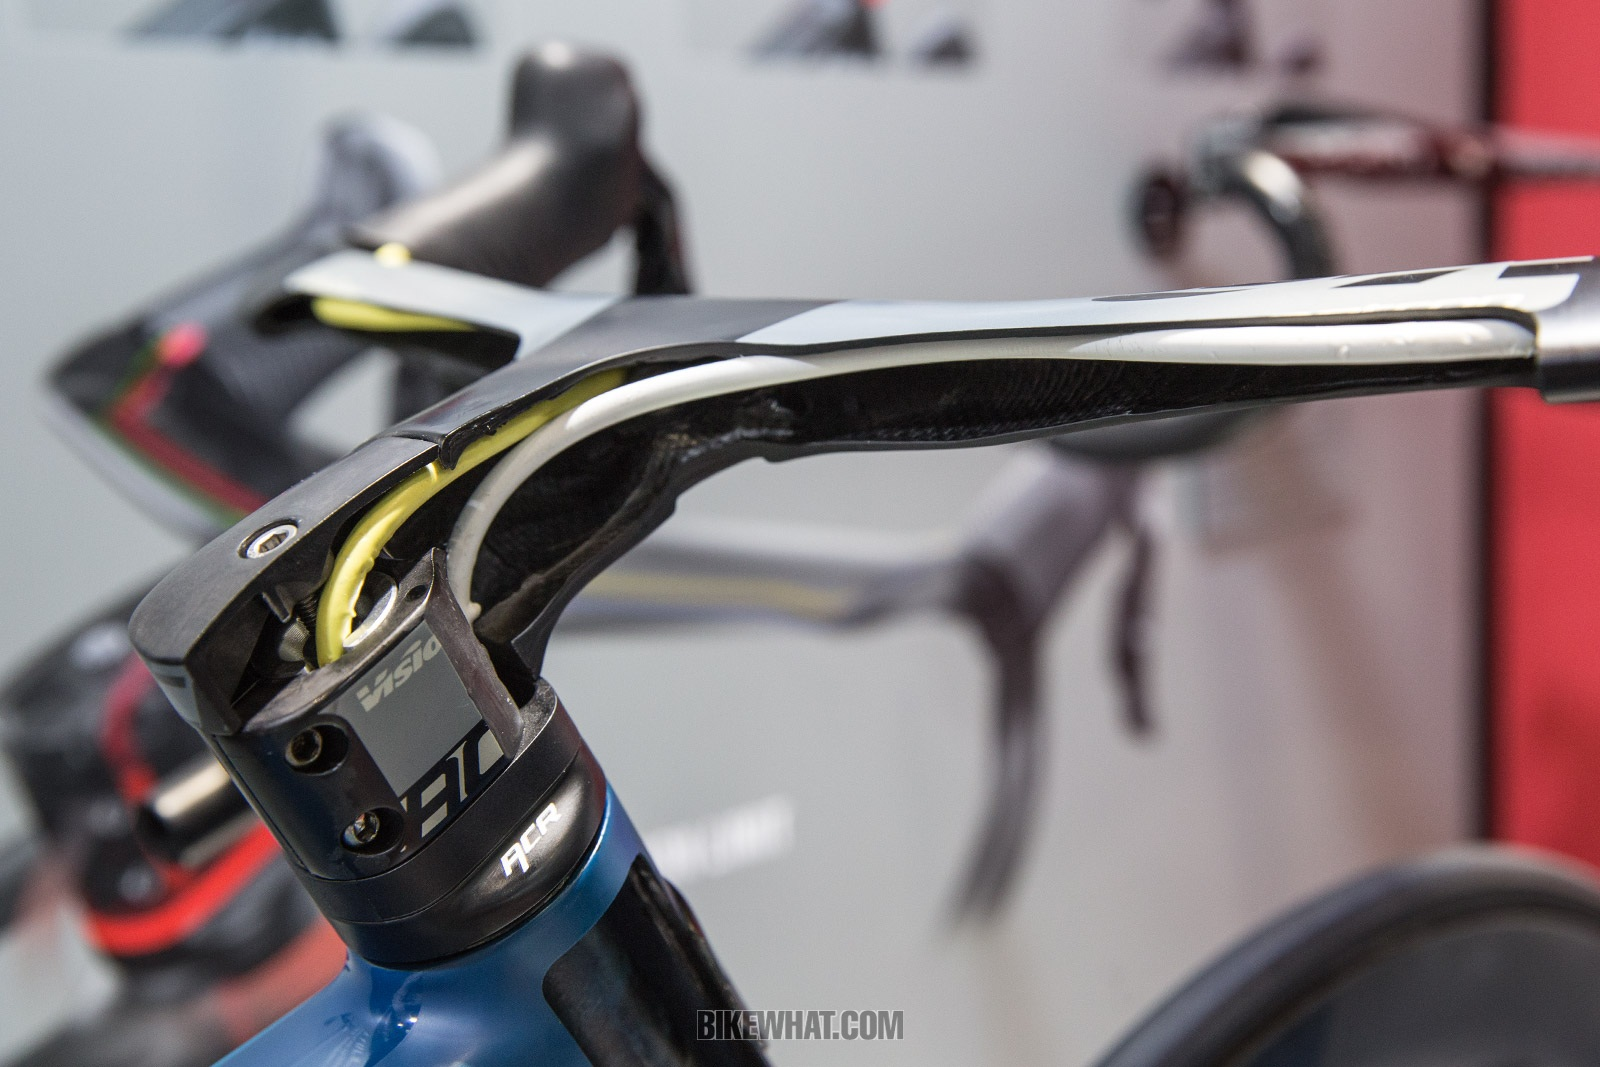 Feature_TaipeiCycle_2019_Fsa_3.jpg